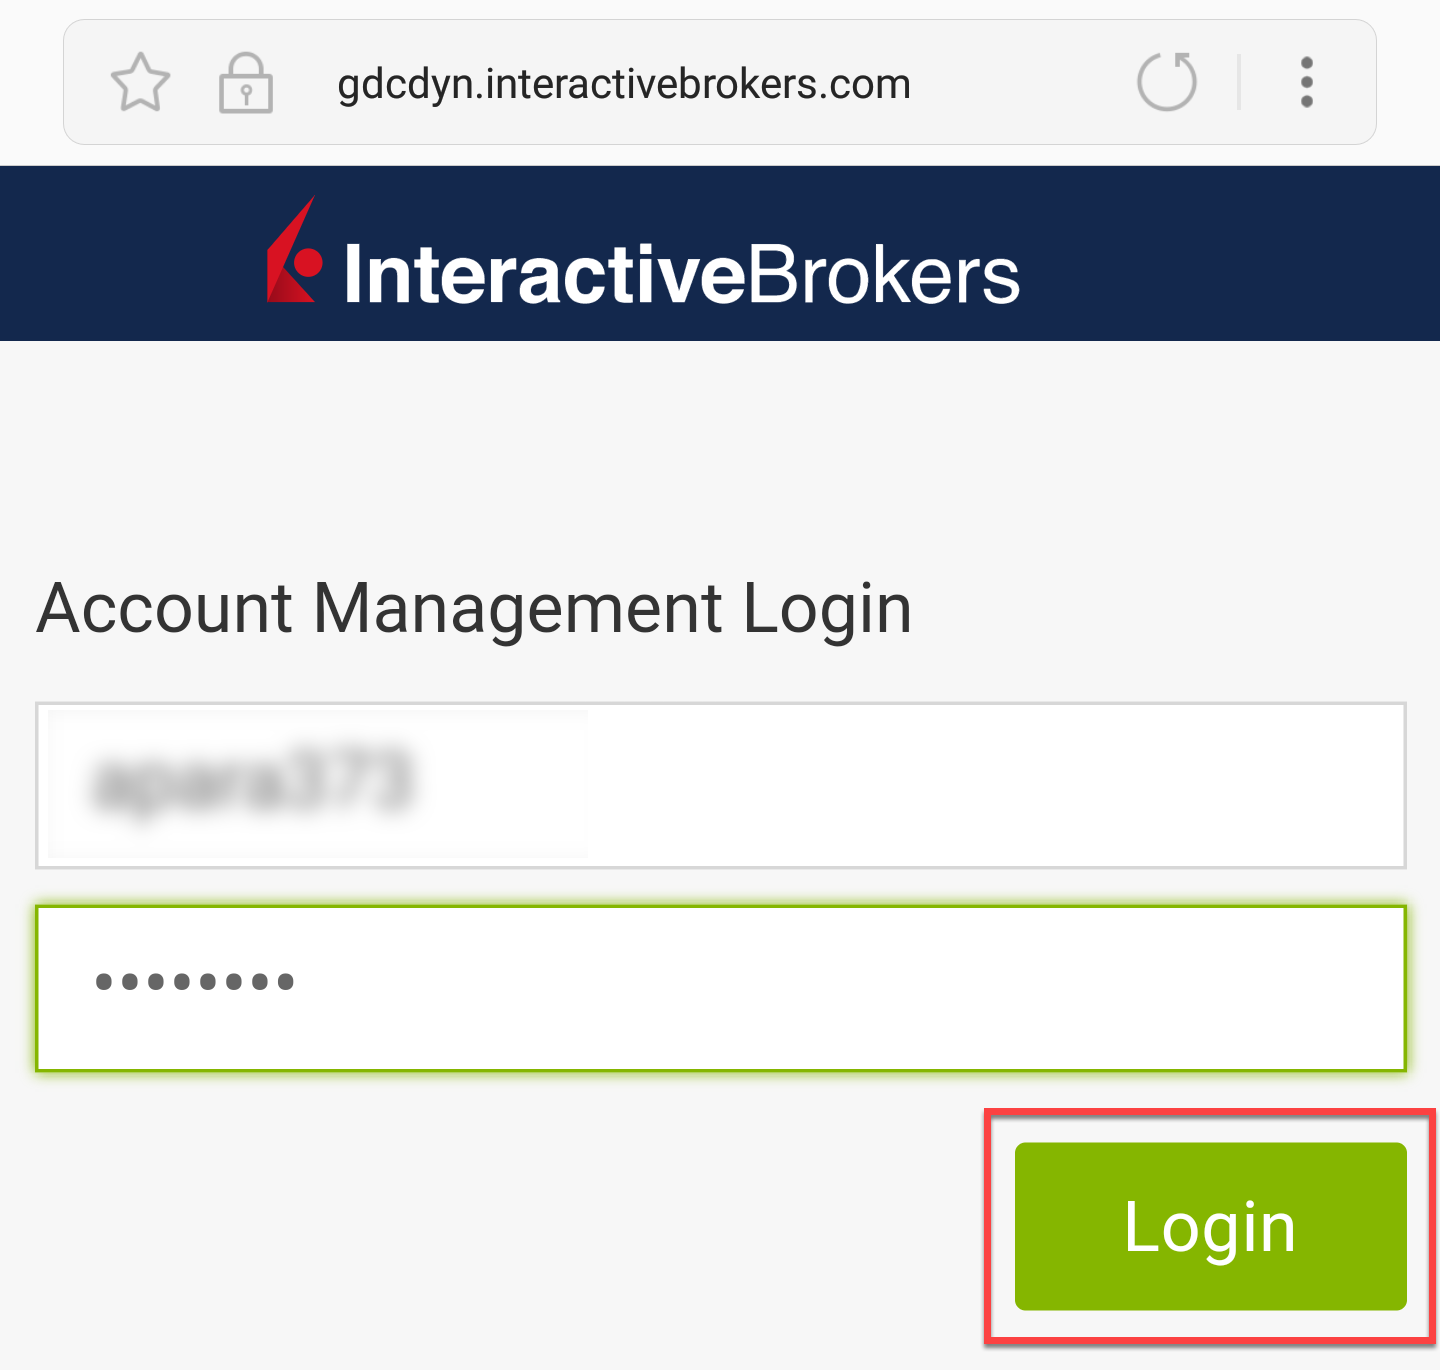 Account Management Login